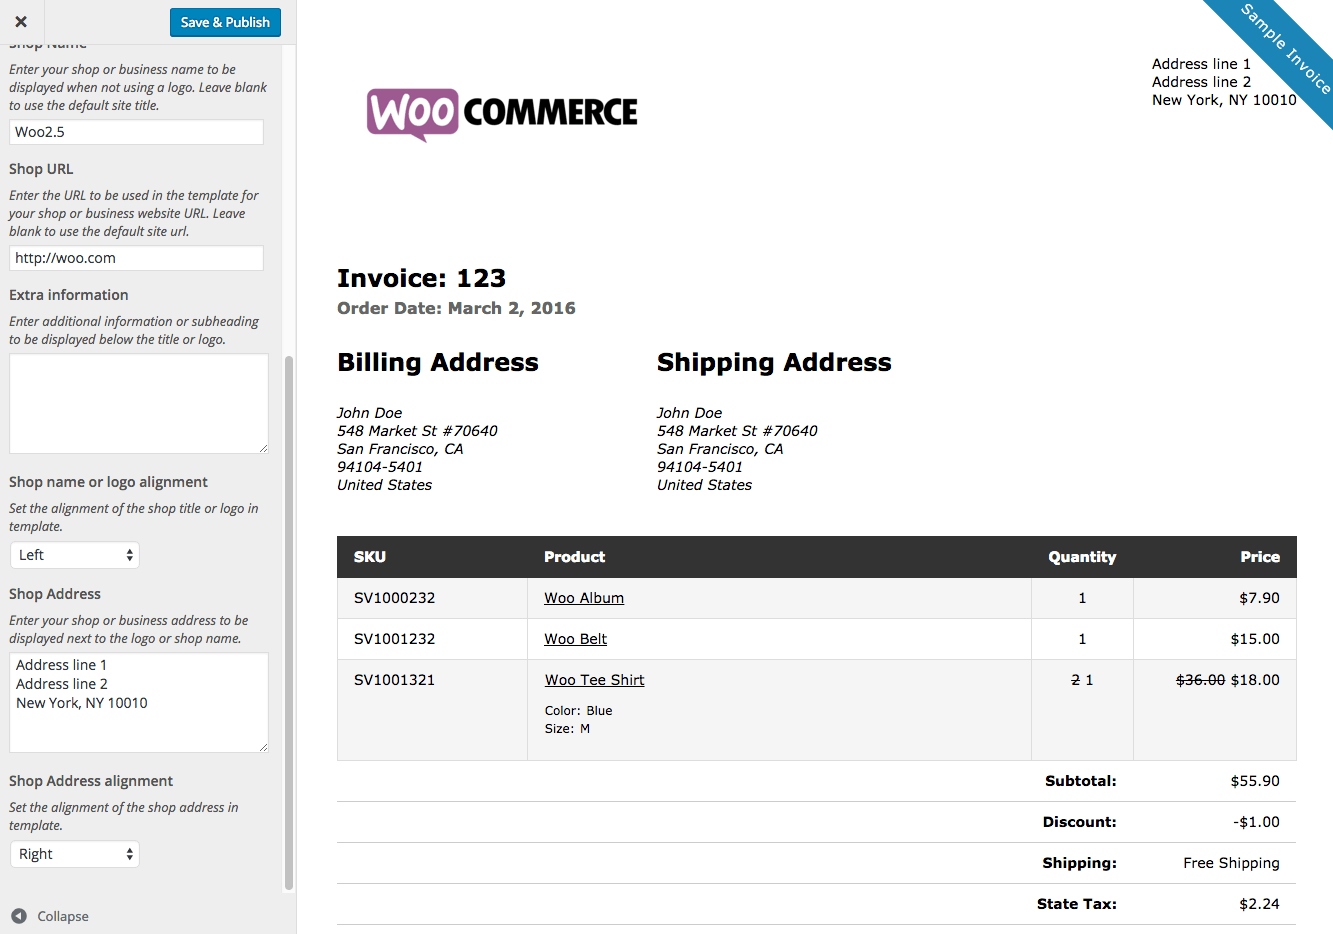 Shopdesignsus  Outstanding Print Invoices Amp Packing Lists  Woocommerce With Lovely Woocommerce Print Invoices  Packing Lists Customizer With Astonishing Printable Receipts Also Kmart Receipt In Addition Where To Find Tracking Number On Usps Receipt And Gdc Receipt As Well As Budget Toll Receipts Additionally Online Receipt From Woocommercecom With Shopdesignsus  Lovely Print Invoices Amp Packing Lists  Woocommerce With Astonishing Woocommerce Print Invoices  Packing Lists Customizer And Outstanding Printable Receipts Also Kmart Receipt In Addition Where To Find Tracking Number On Usps Receipt From Woocommercecom